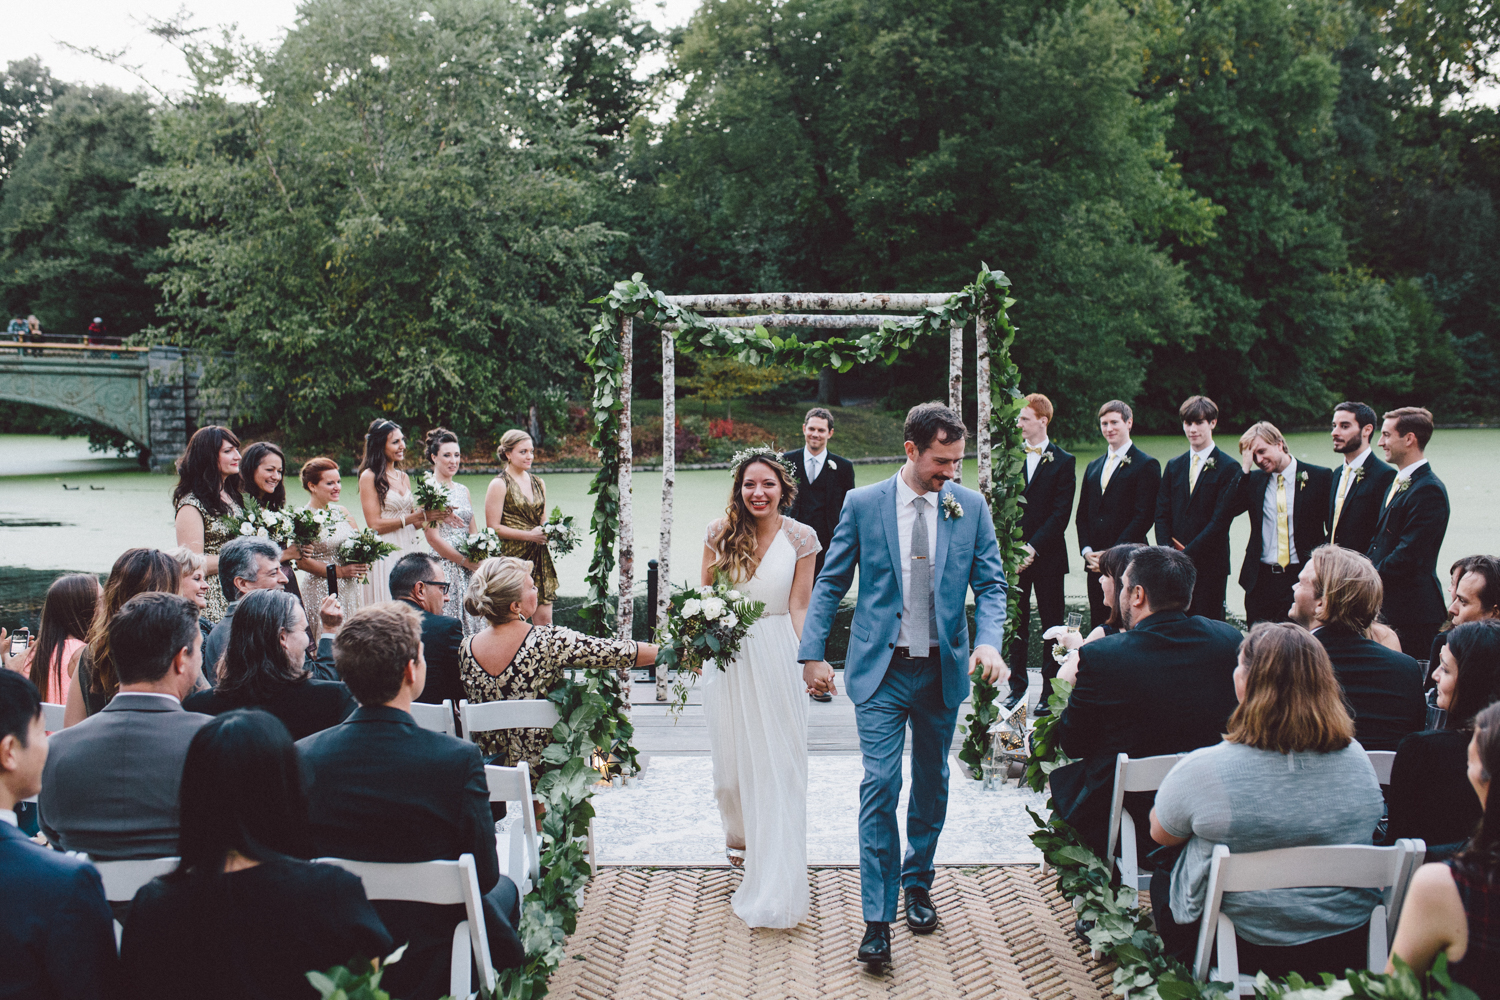 Couple walks up the aisle after their wedding ceremony at Prospect Park Boat House